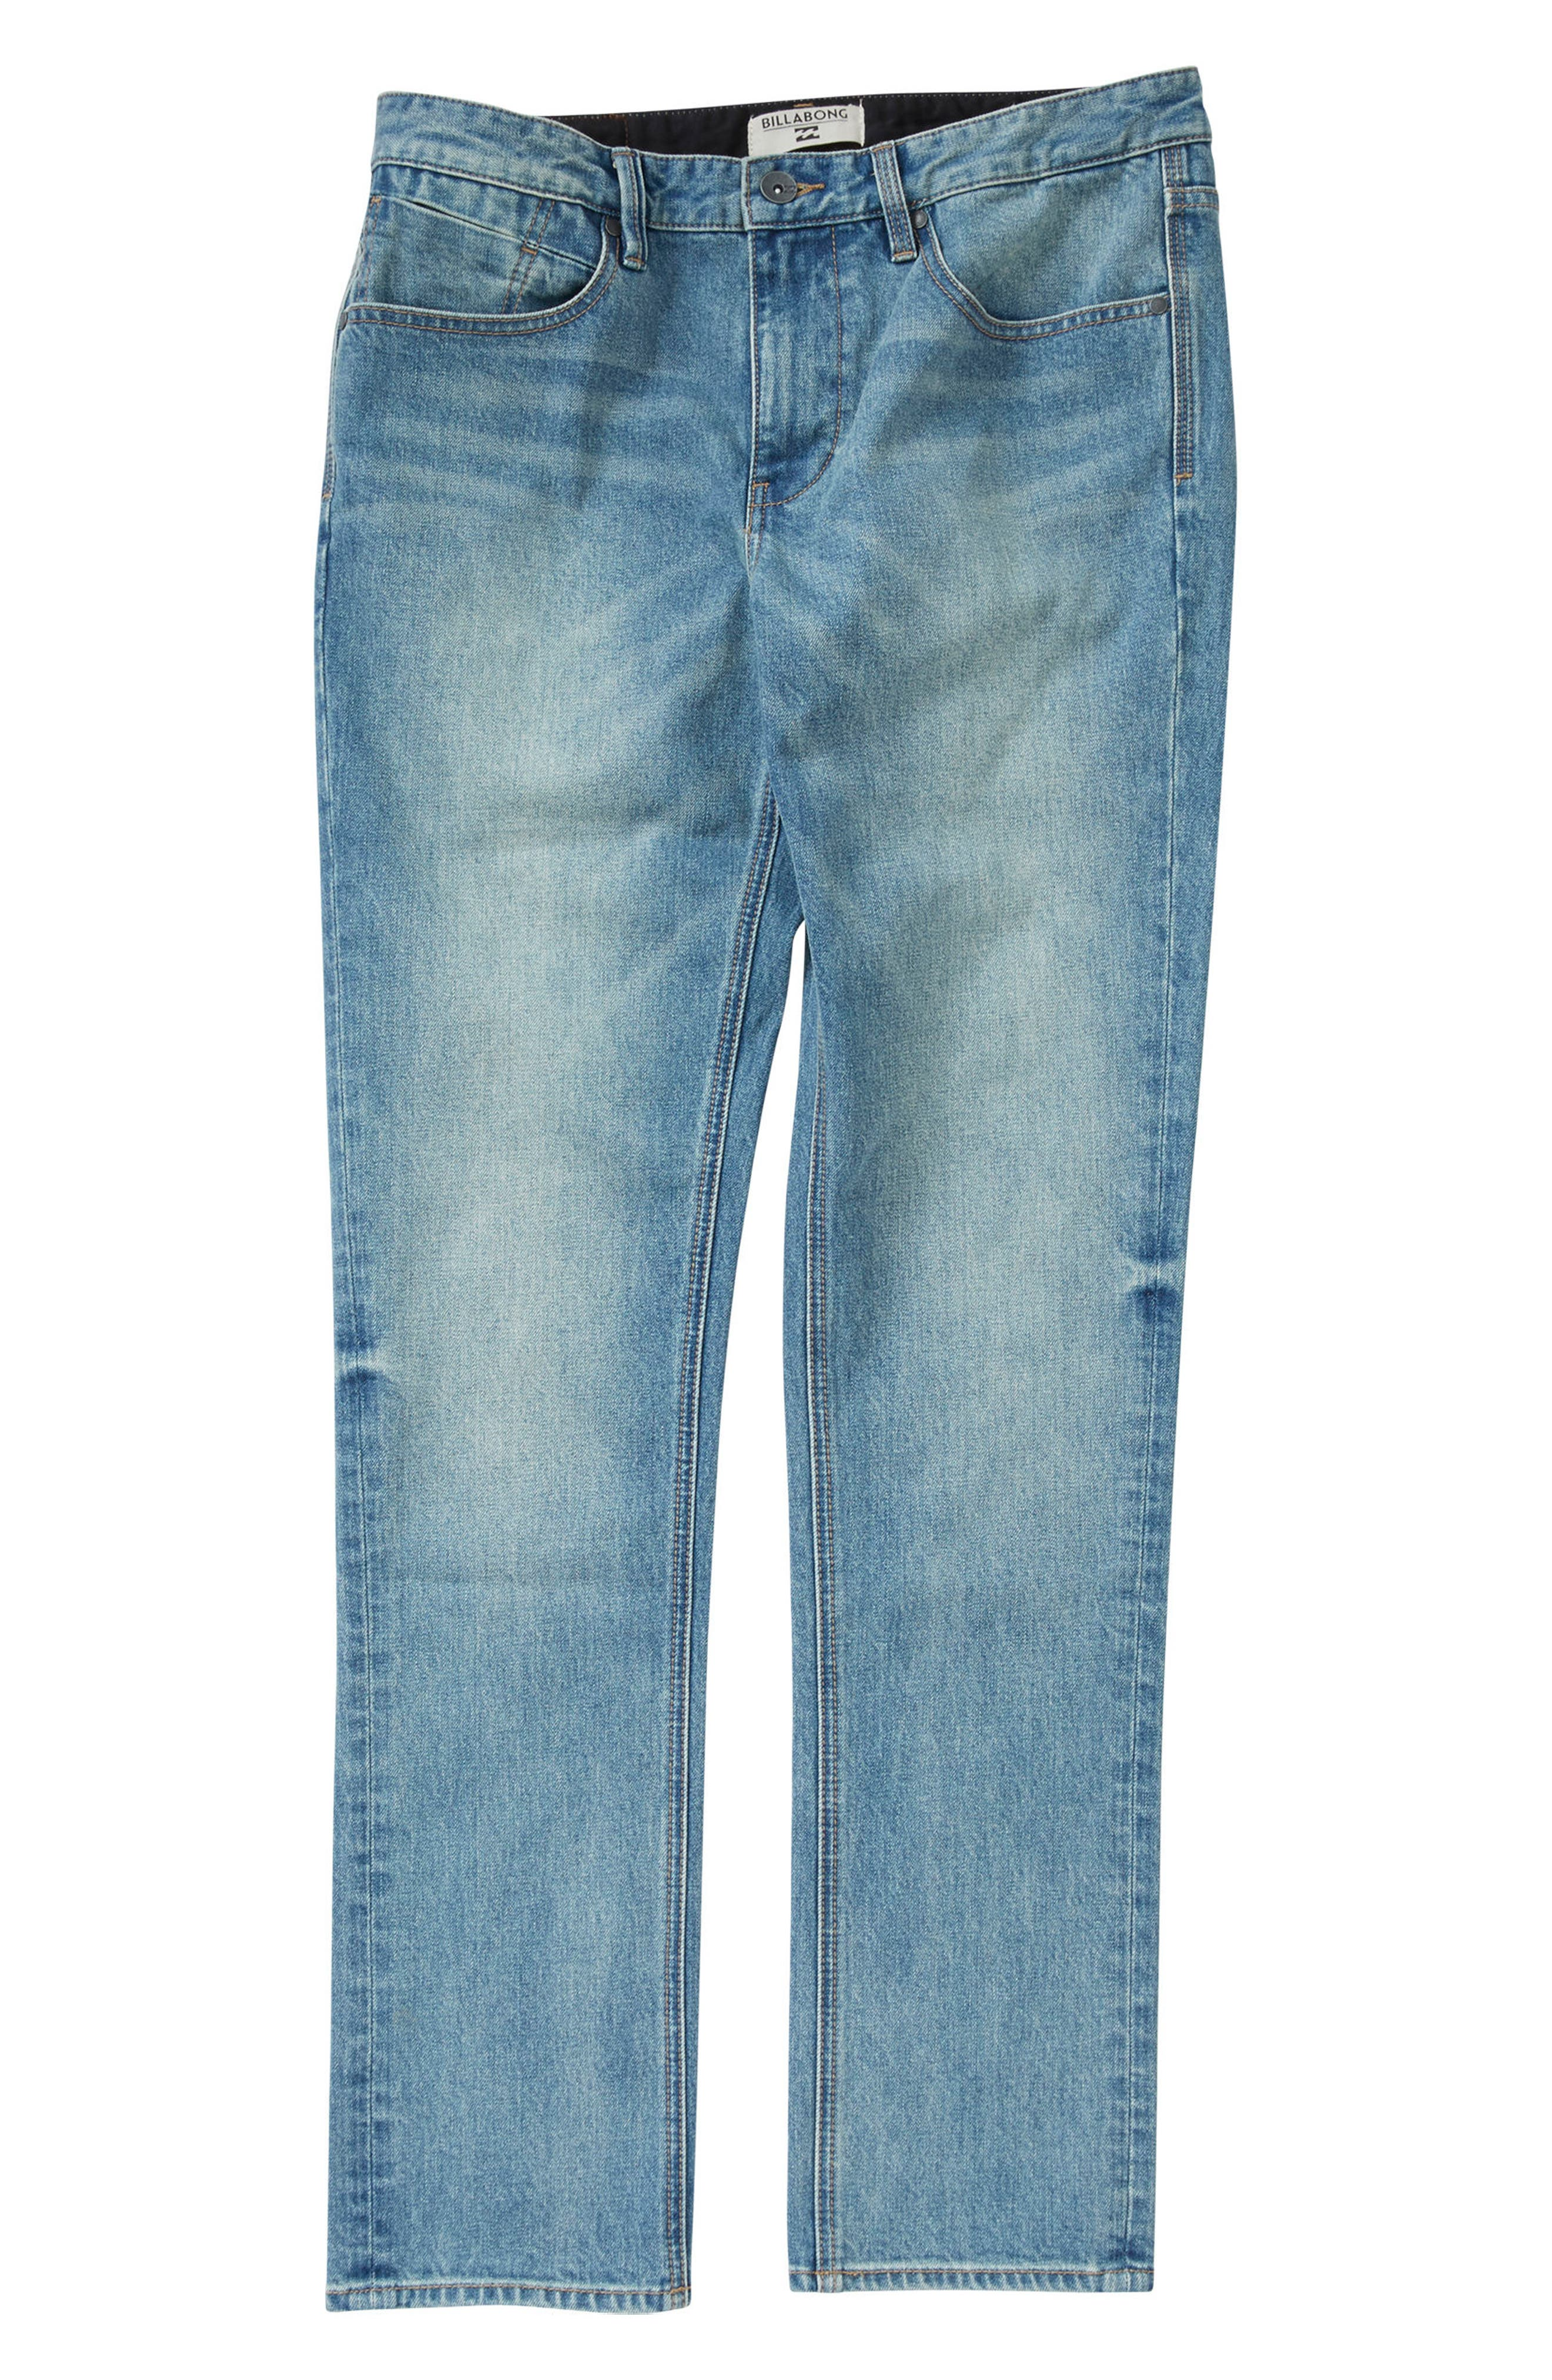 Outsider Jeans,                         Main,                         color, Blue Water